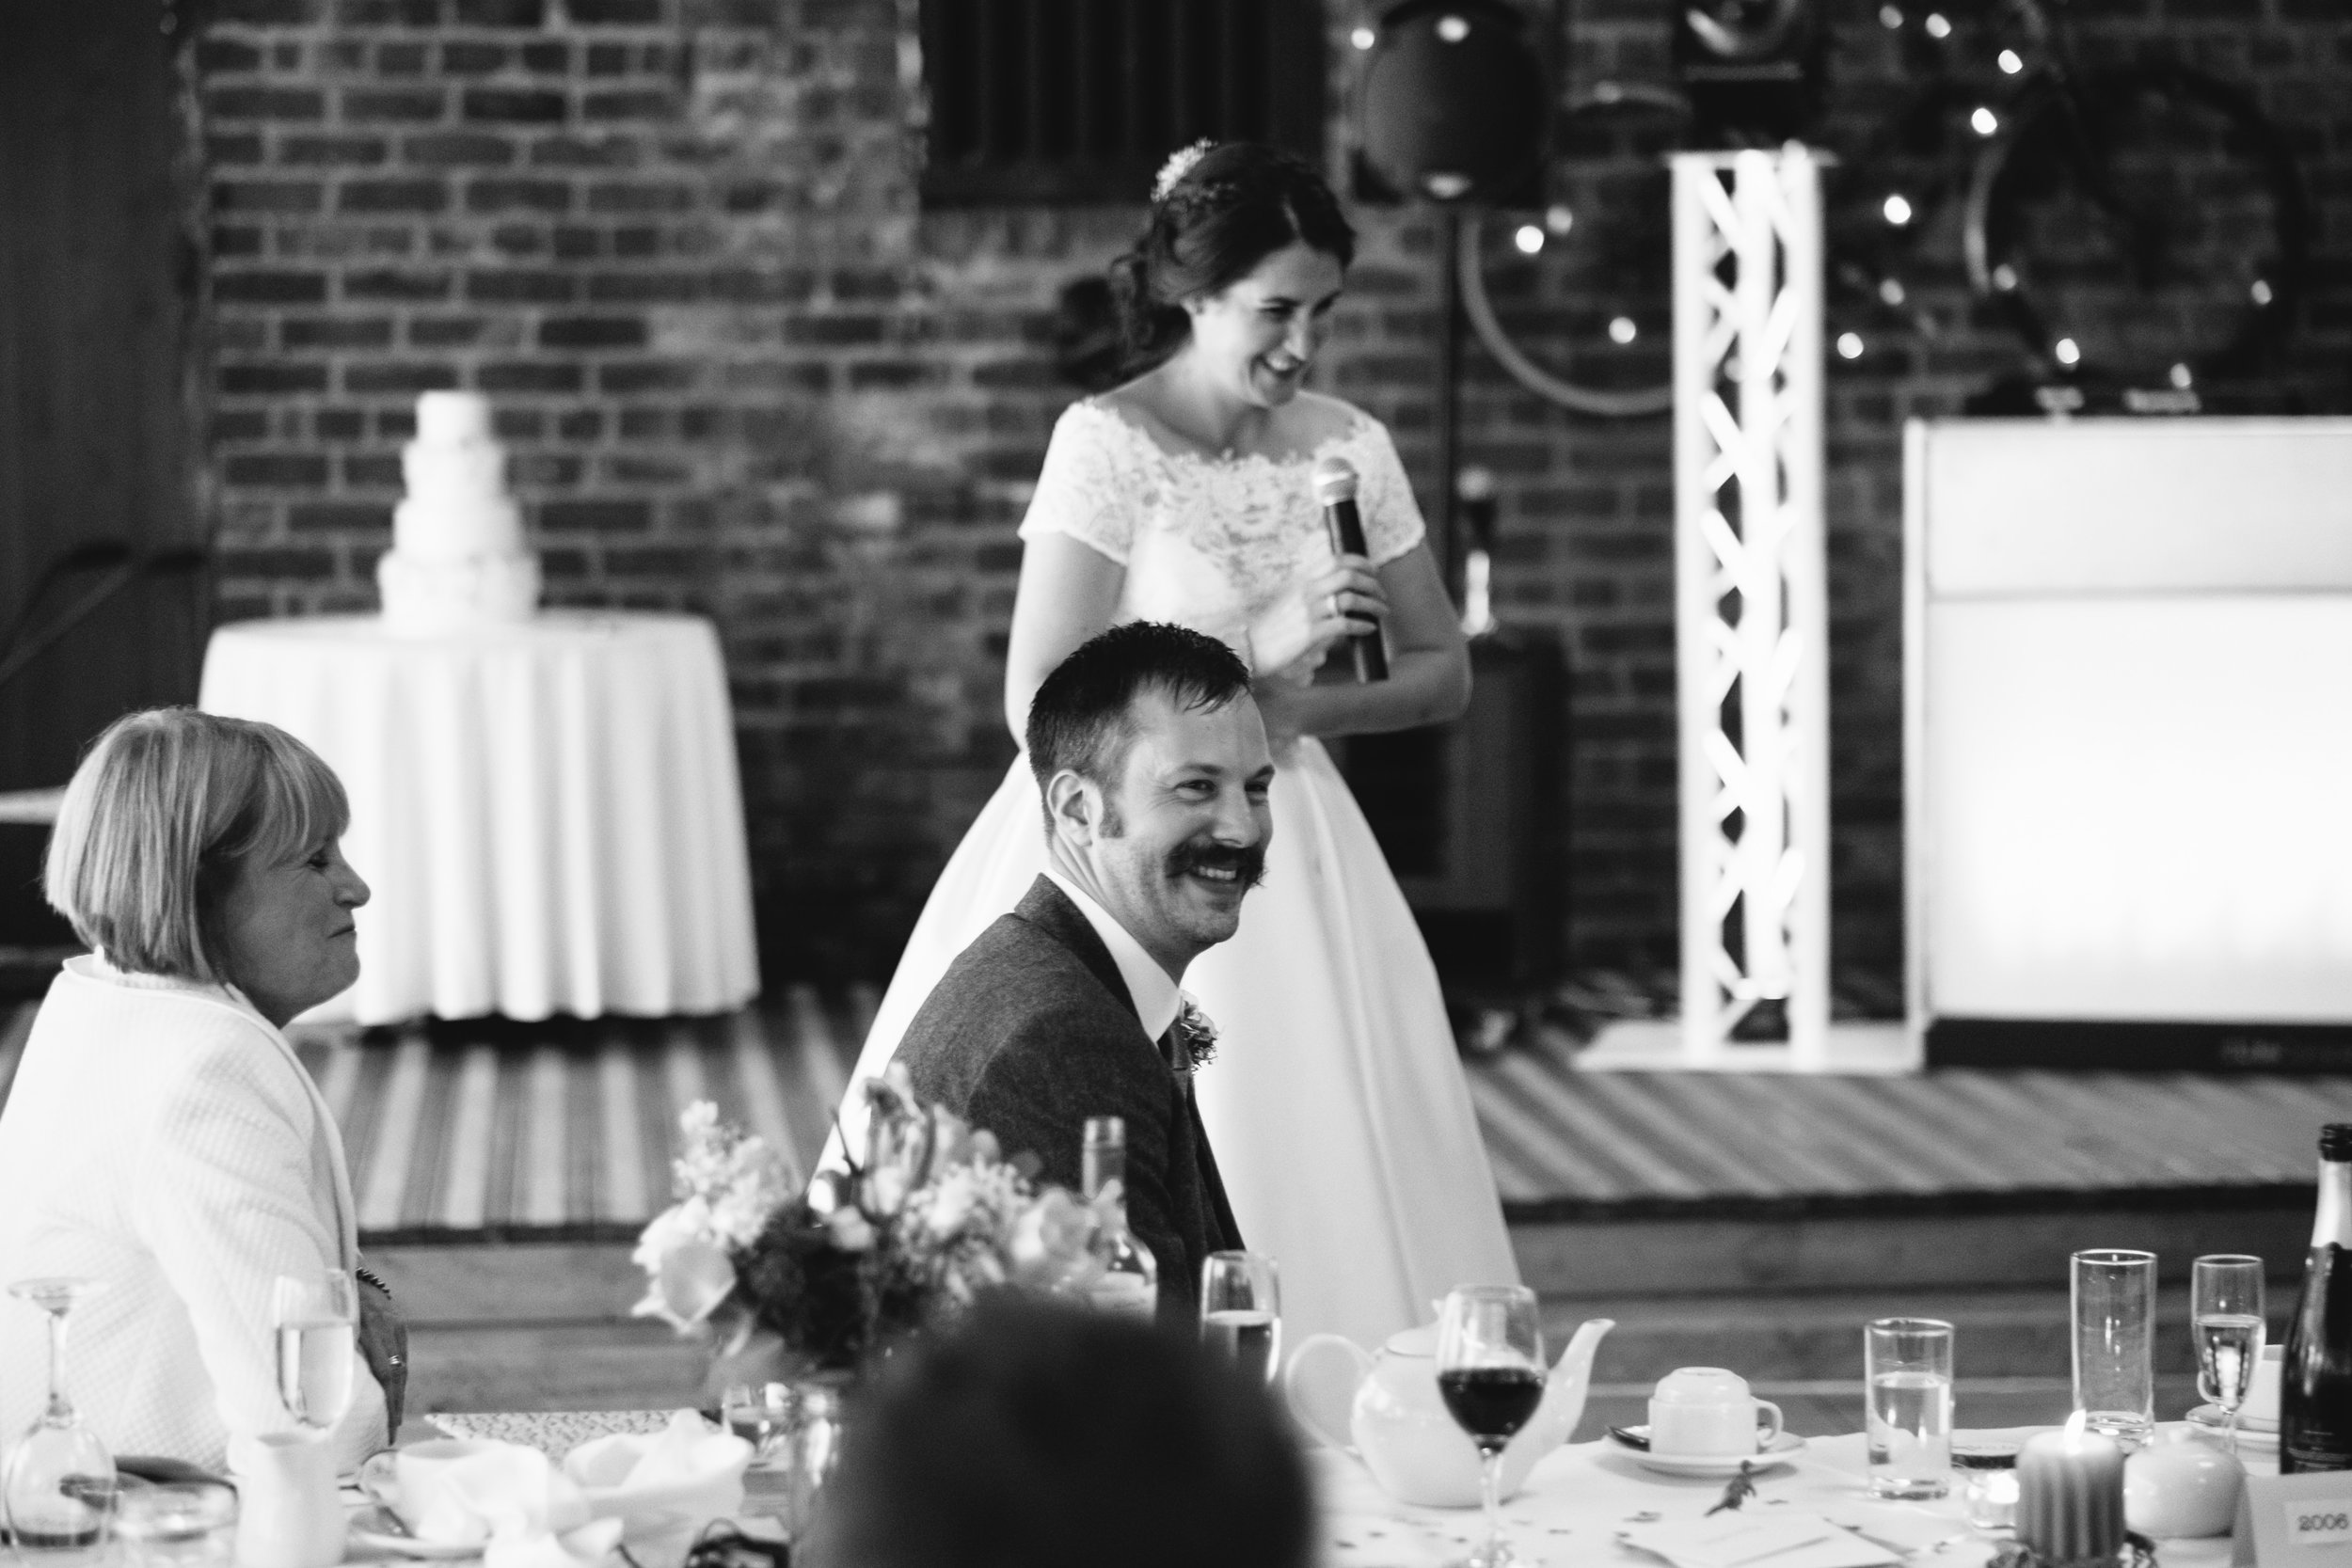 Black and white photo of the groom laughing at the bride's speech